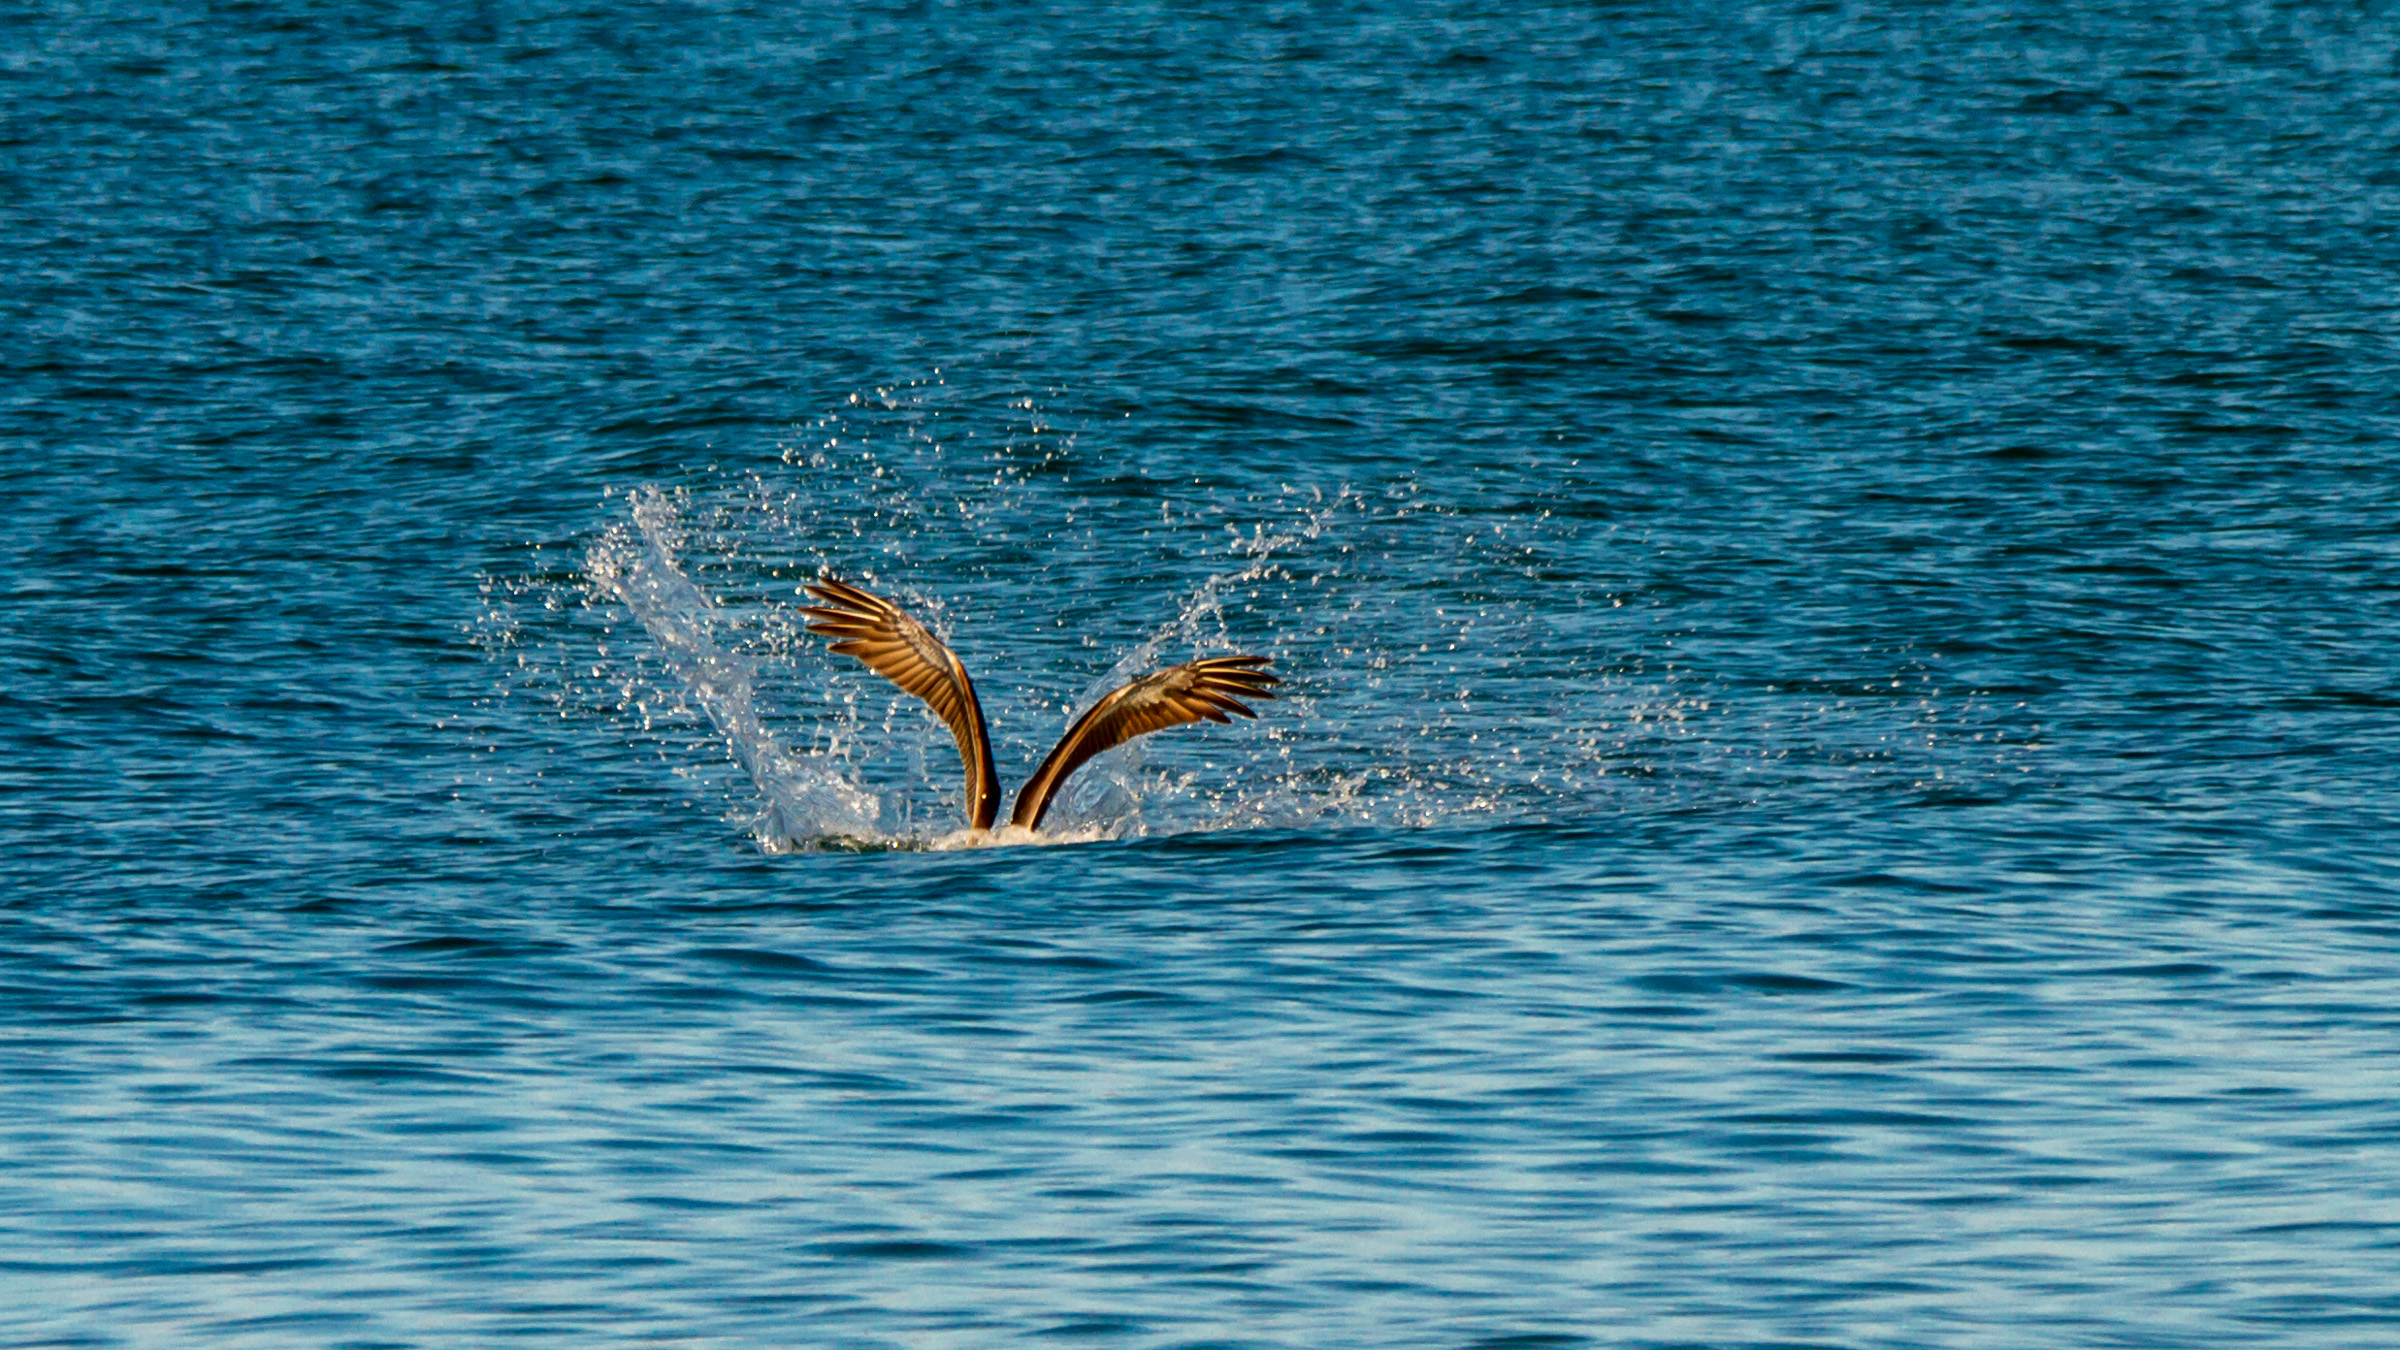 Brown Pelican Dive